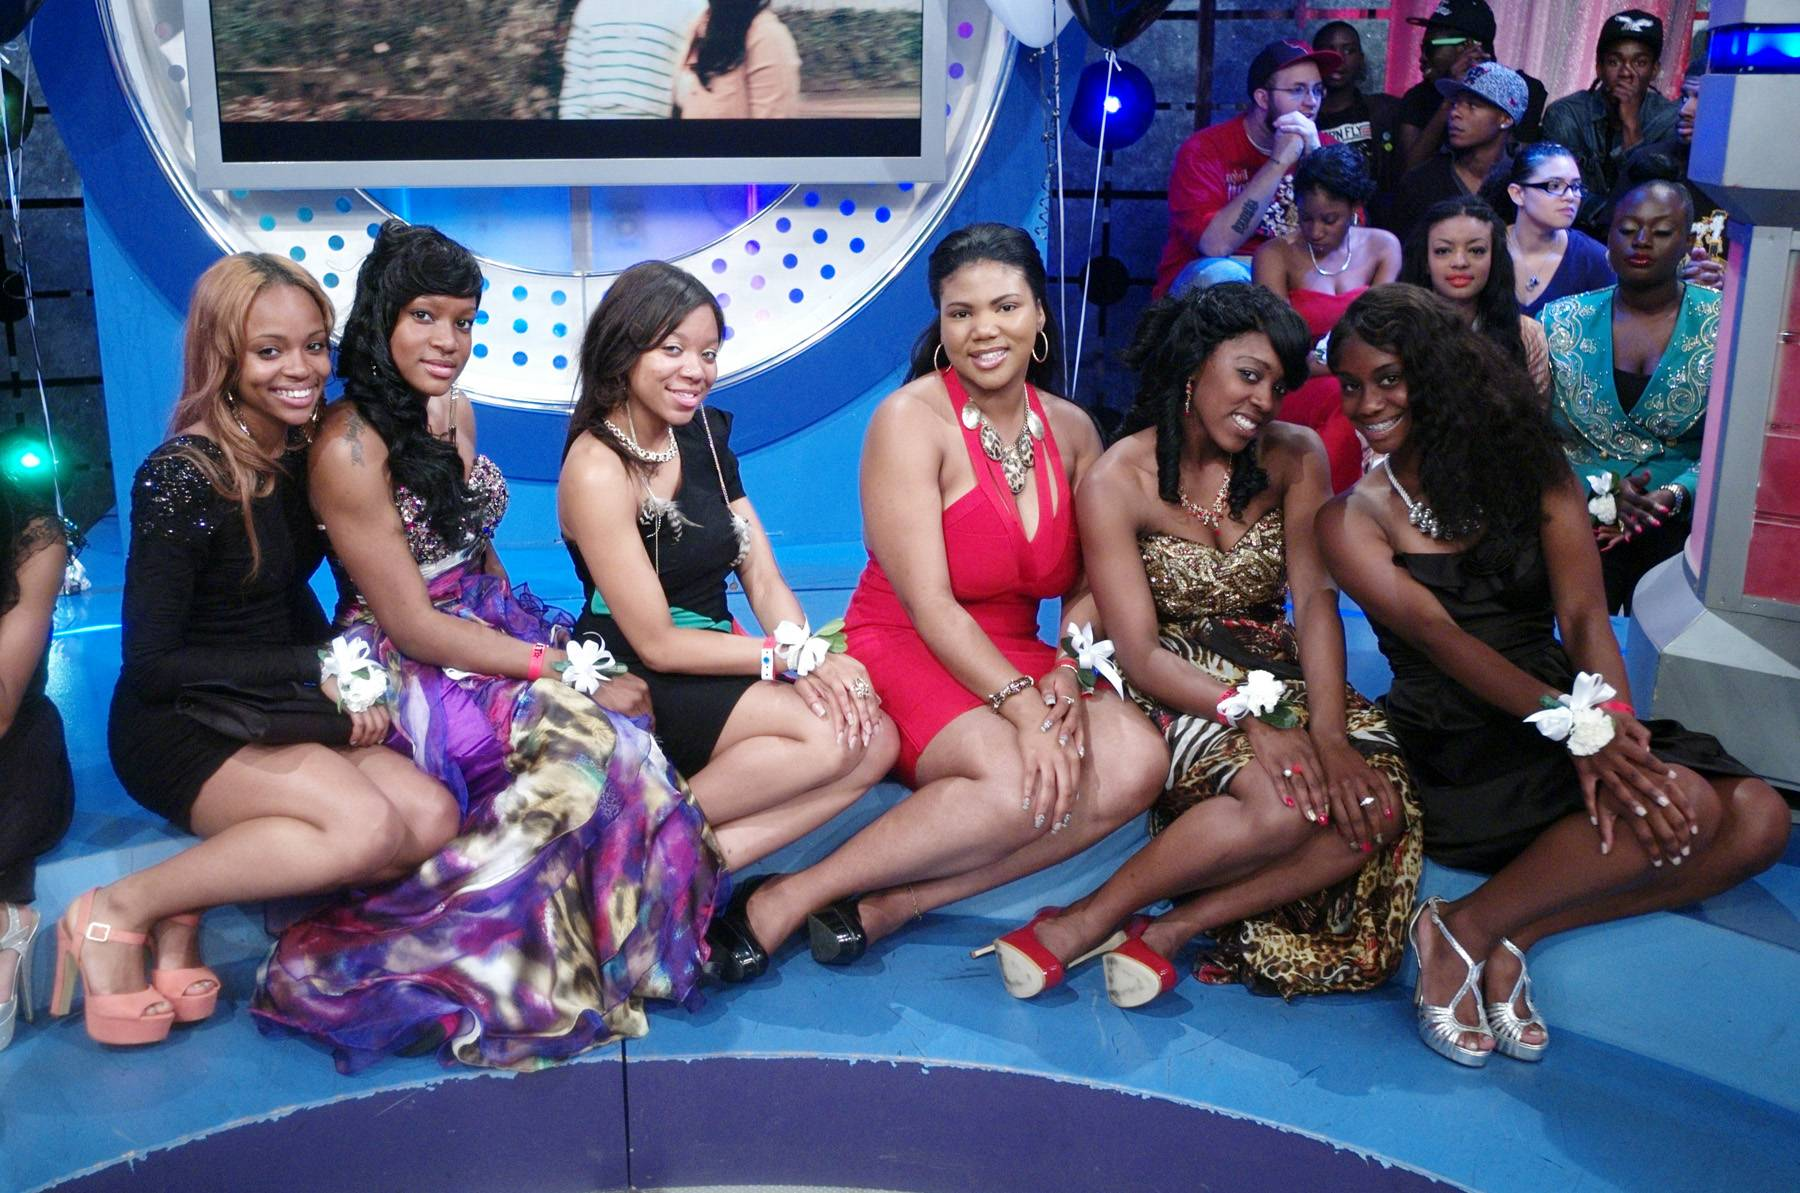 Ready For Prom - Audience members dressed to the Nines at 106 & Park, May 25, 2012. (Photo: John Ricard / BET)